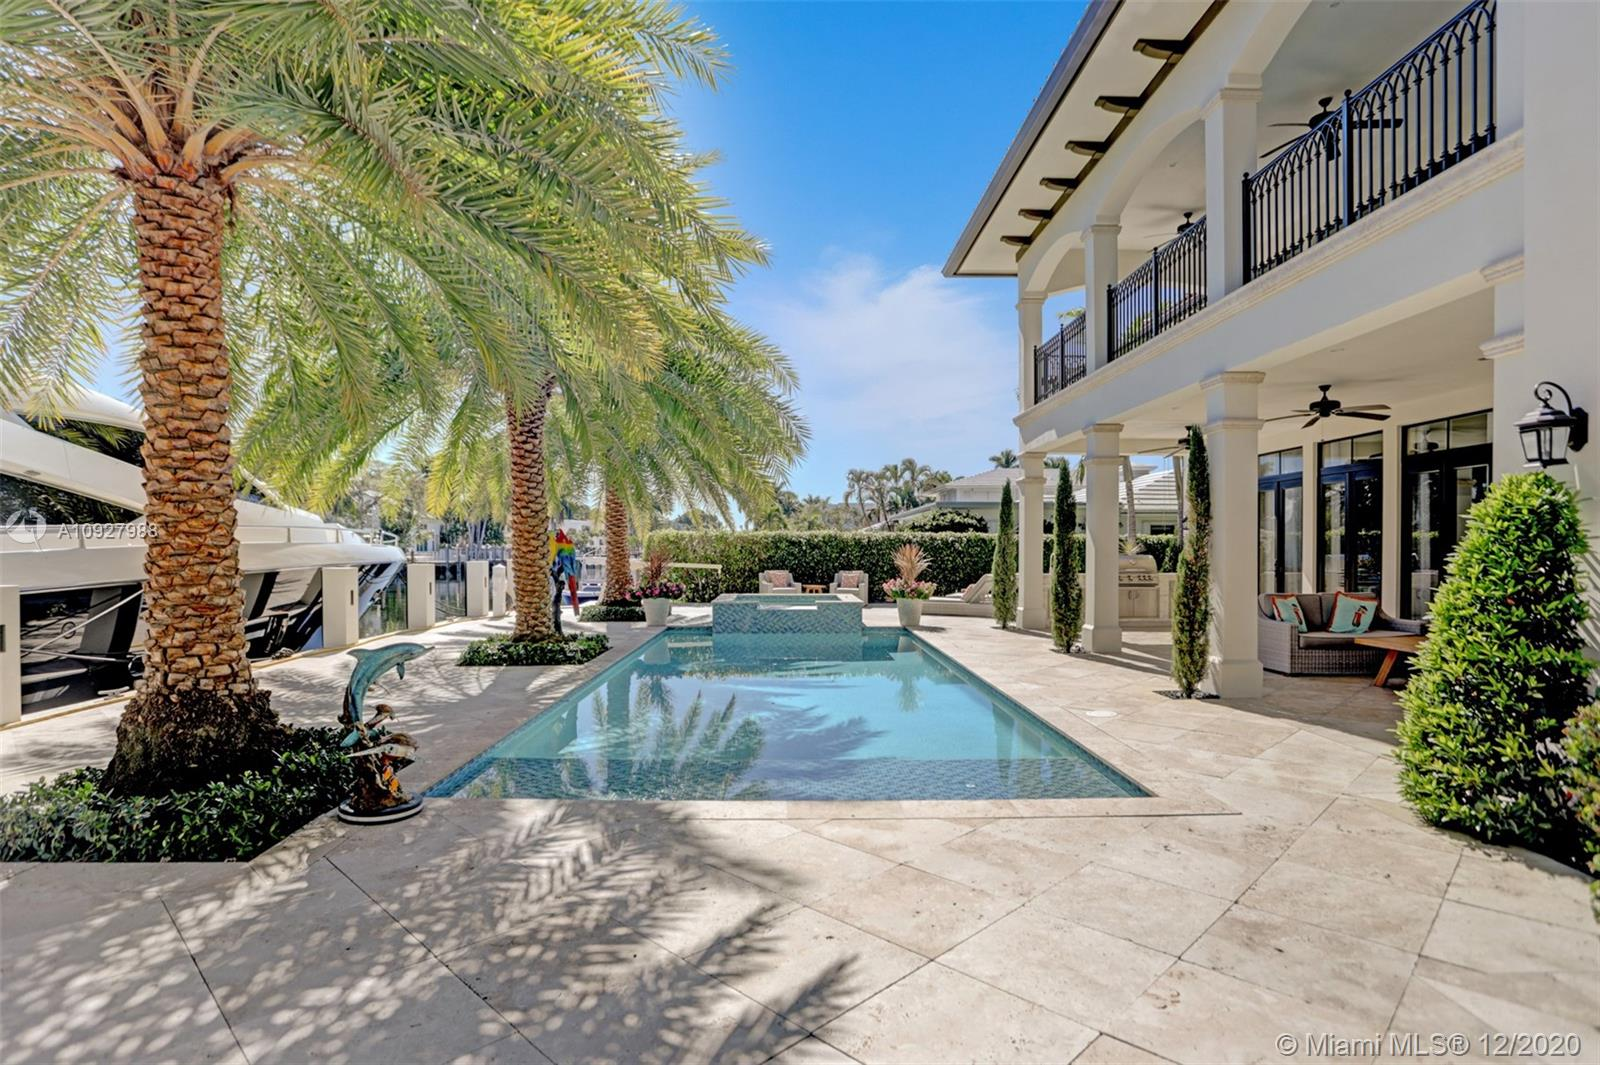 BUILT in 2017. Modern Transitional Style Home - SELLER READY TO CLOSE IN 30 DAYS! Ft Lauderdale's most prestigious waterfront neighborhoods of Nurmi Isles.New concrete dock and seawall with 95 feet of waterfront. Breathtaking views of the Venetian inspired 120 foot wide deepwater canal from every room. Hit the outdoor shower or dip in the heated salt water pool.Gourmet kitchen featuring Thermadore appliances, gas range,double ovens, take it outside to your beautiful summer kitchen. Cozy up in the formal living room in front of the gas fireplace. Take the impressive curved stairway or elevator to the 2nd floor to your grand elegant master suite. Master bath fit for a king & queen with his & hers water closets, dual vanities,grand Walk In Closet. 2 Laundry Rms, Modern Transitional Style Home